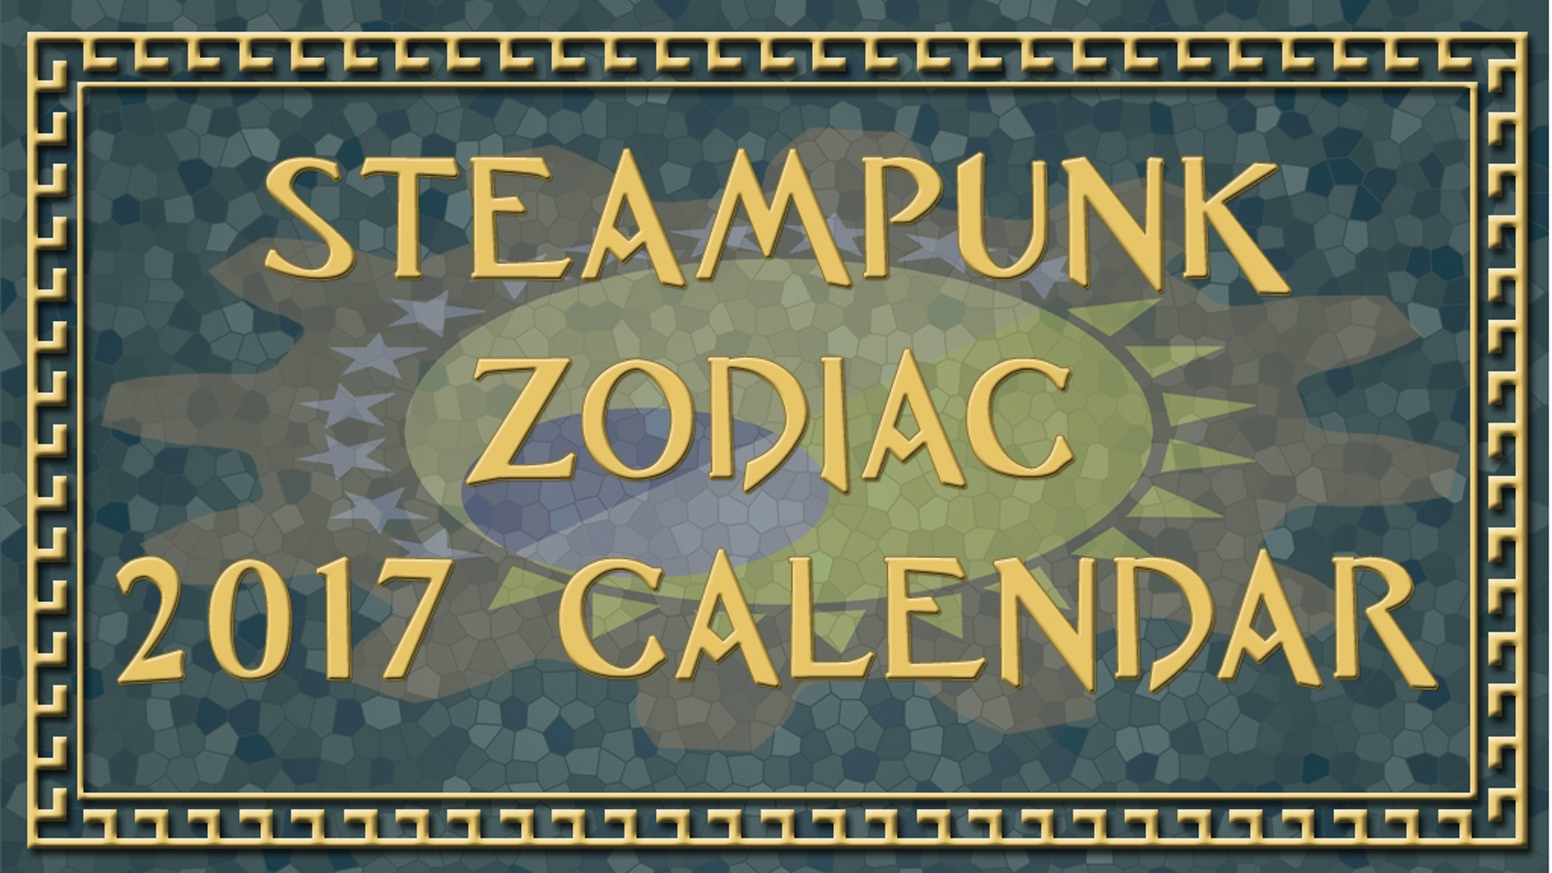 Decorate your wall with the zodiac done up à la steampunk style. Gear up and ready your steam engines for those 2017 goals!